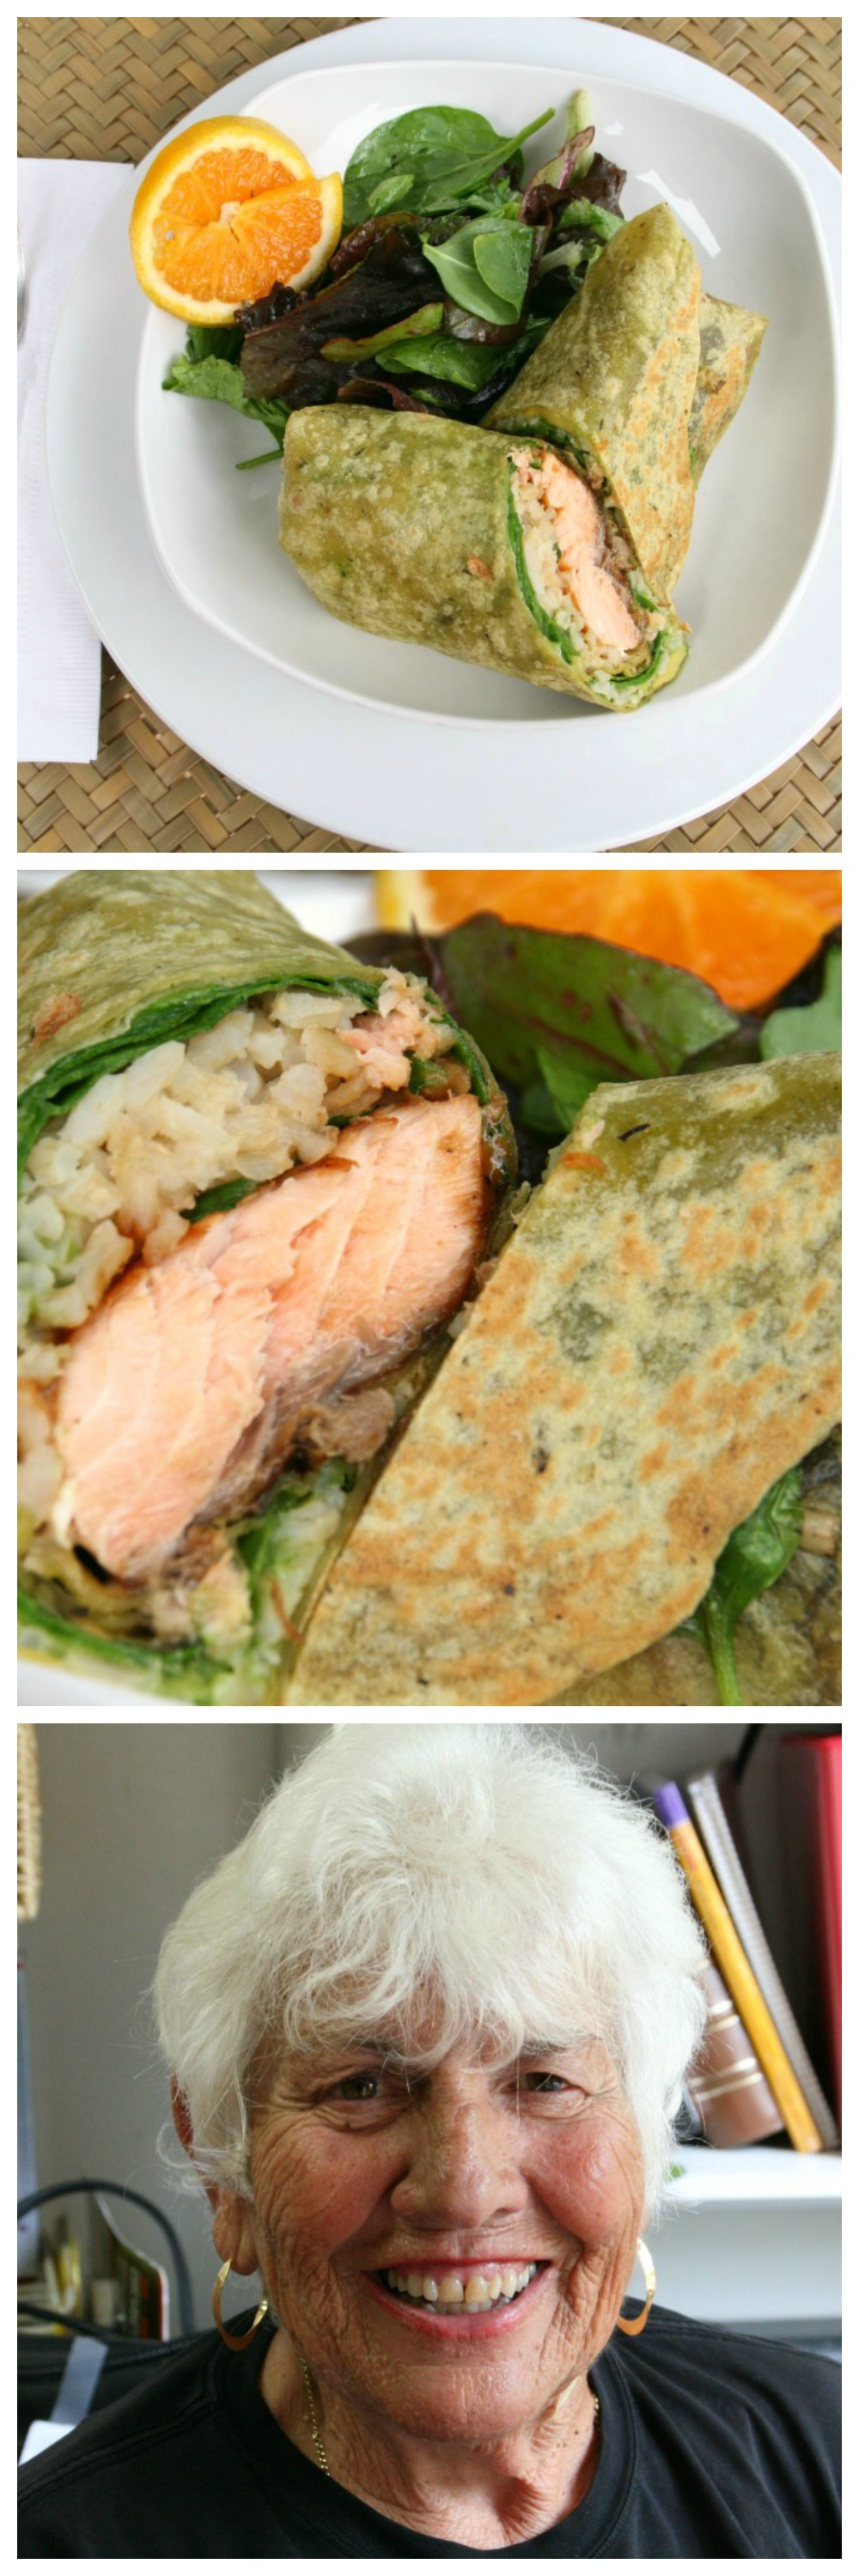 Salmon Wrap Sandwich from The Godmother Cafe of Malibu.